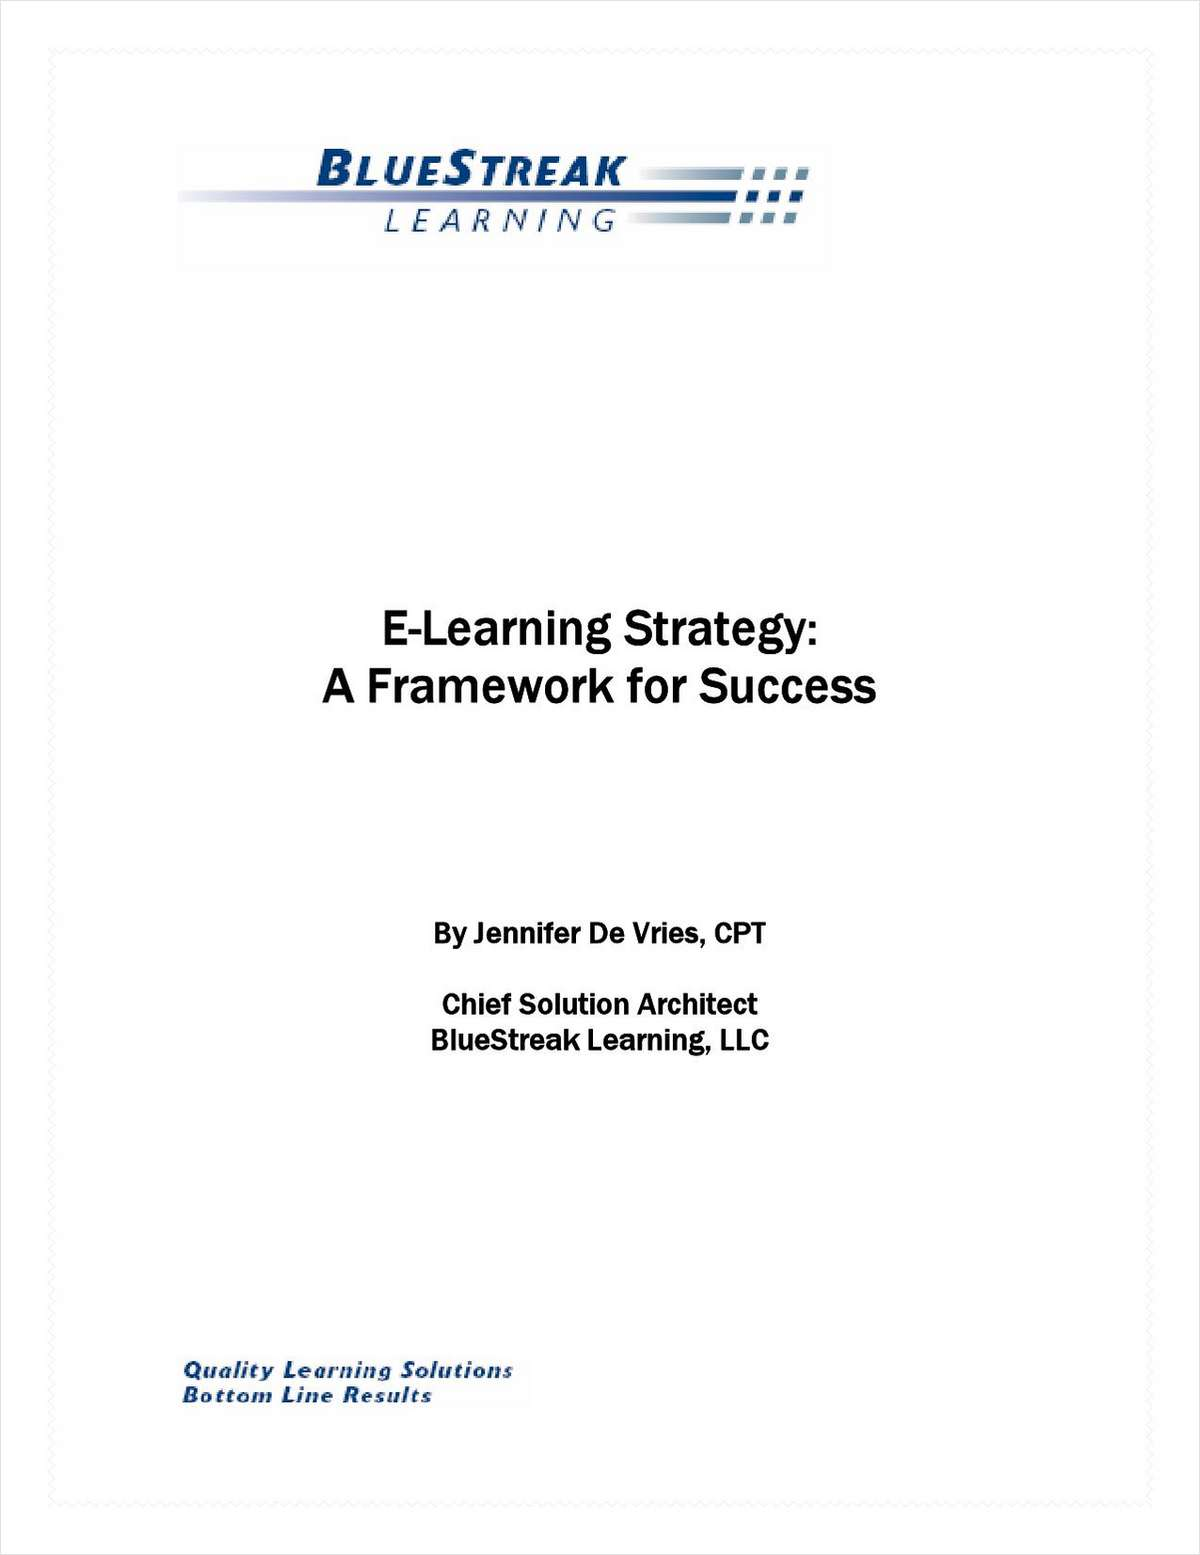 E-Learning Strategy: A Framework for Success for the Training Professional